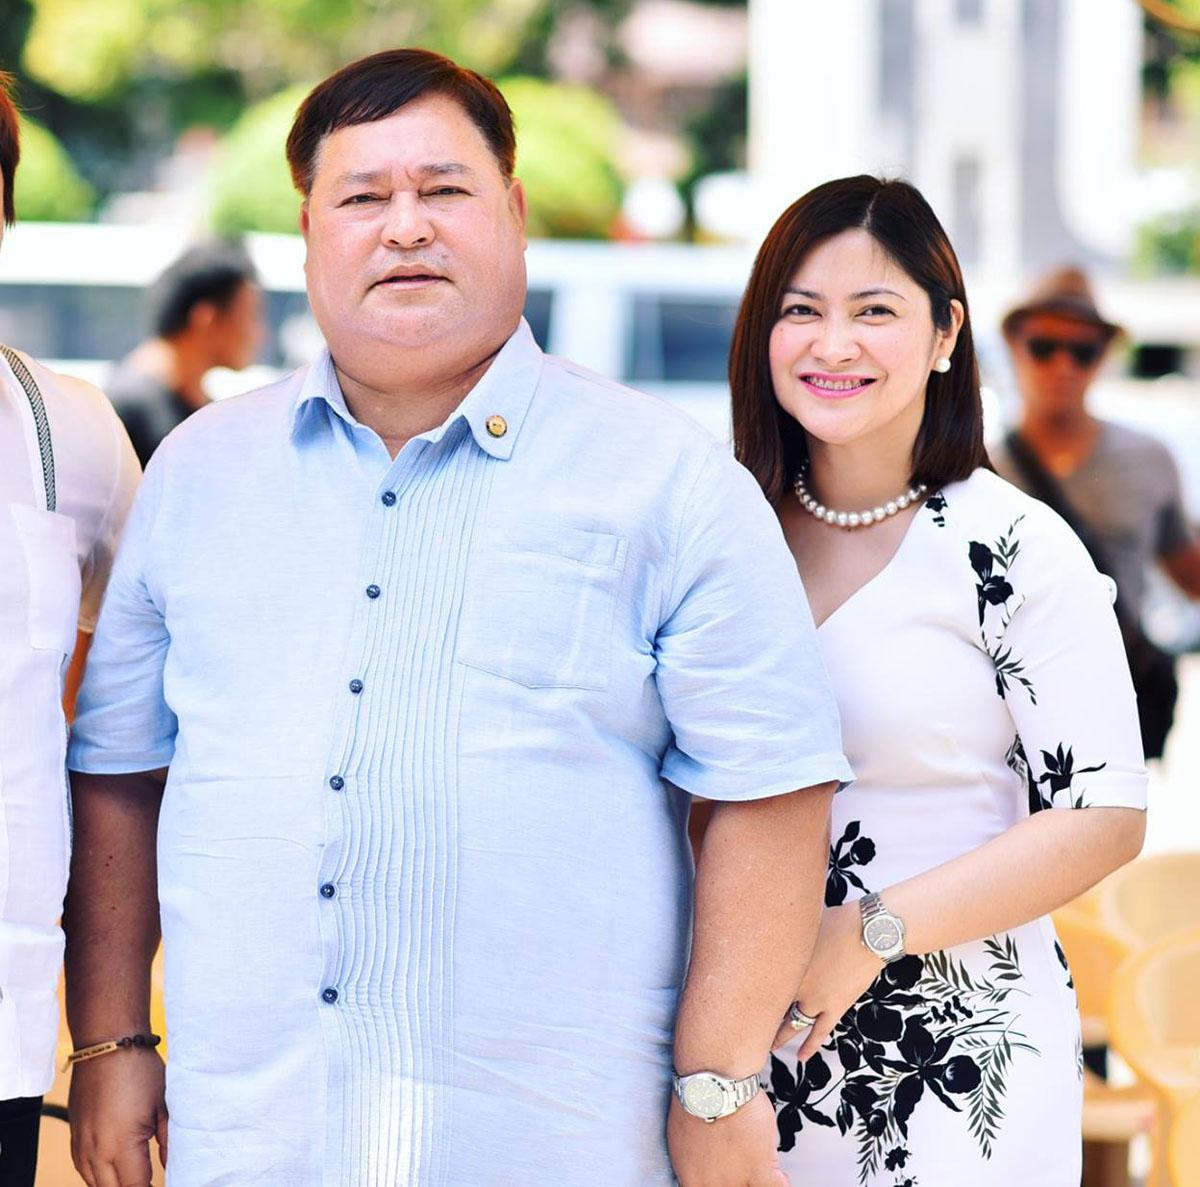 Ozamiz City Mayor Reynaldo Parojinog Sr. (l.) and his daughter, Vice Mayor Nova Princess Parojinog 1